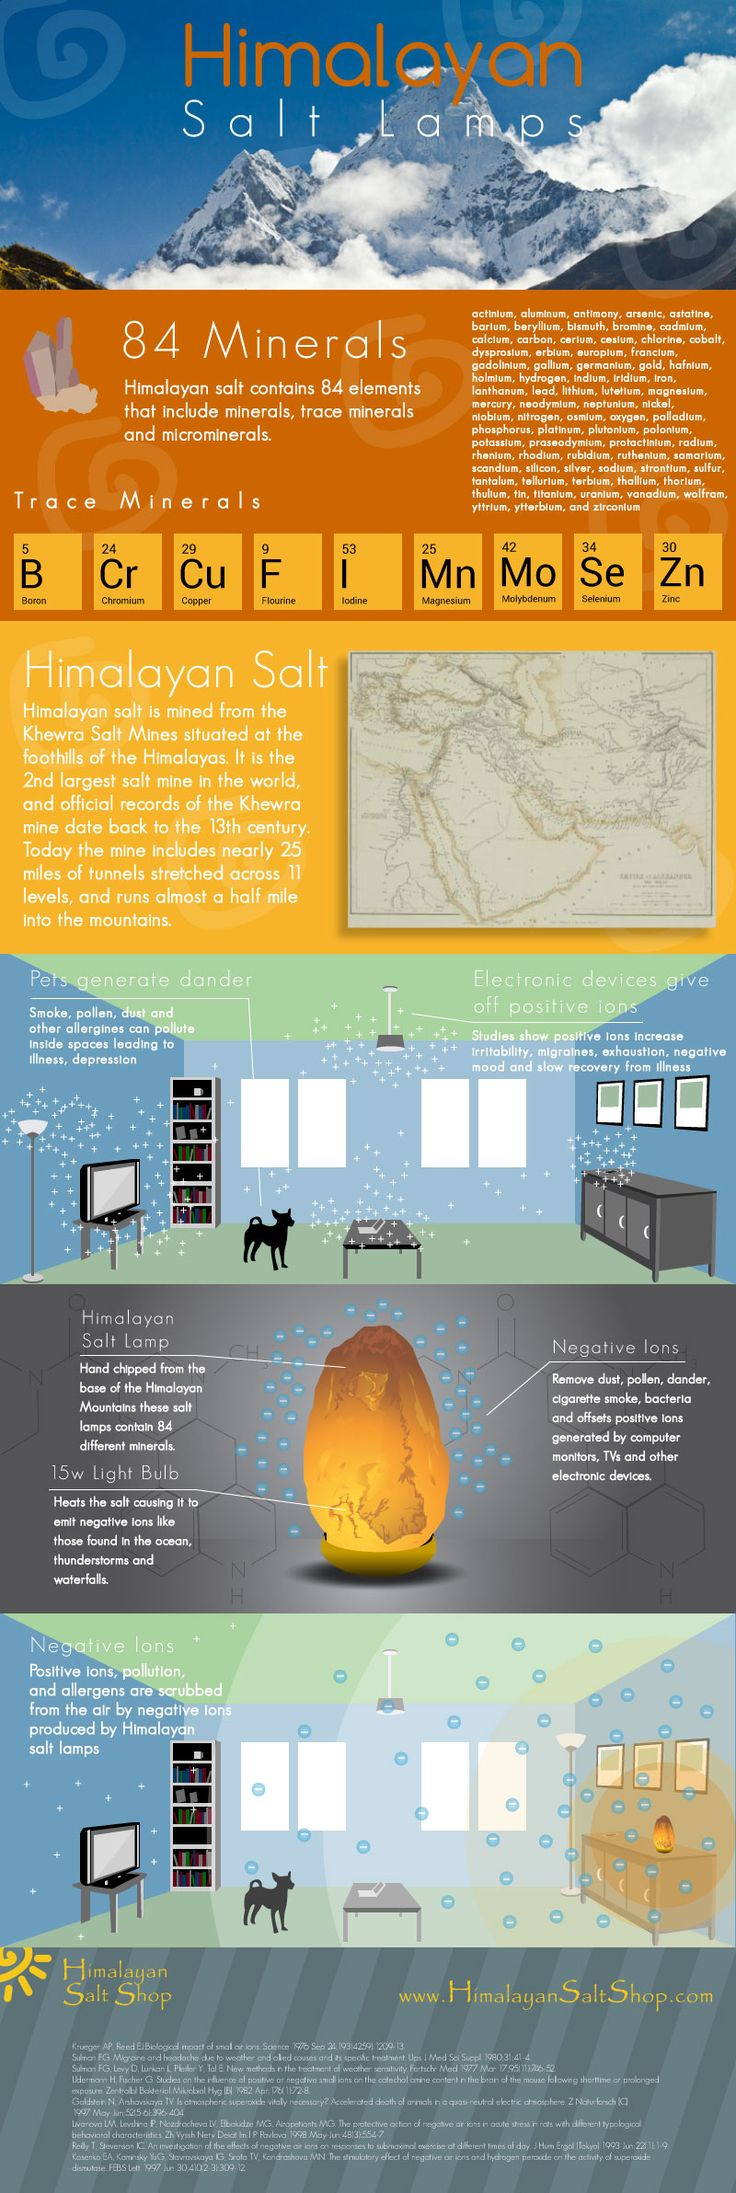 Salt lamps health benefits - Ever Wondered How Himalayan Salt Lamps Worked Here S An Infographic That Explains